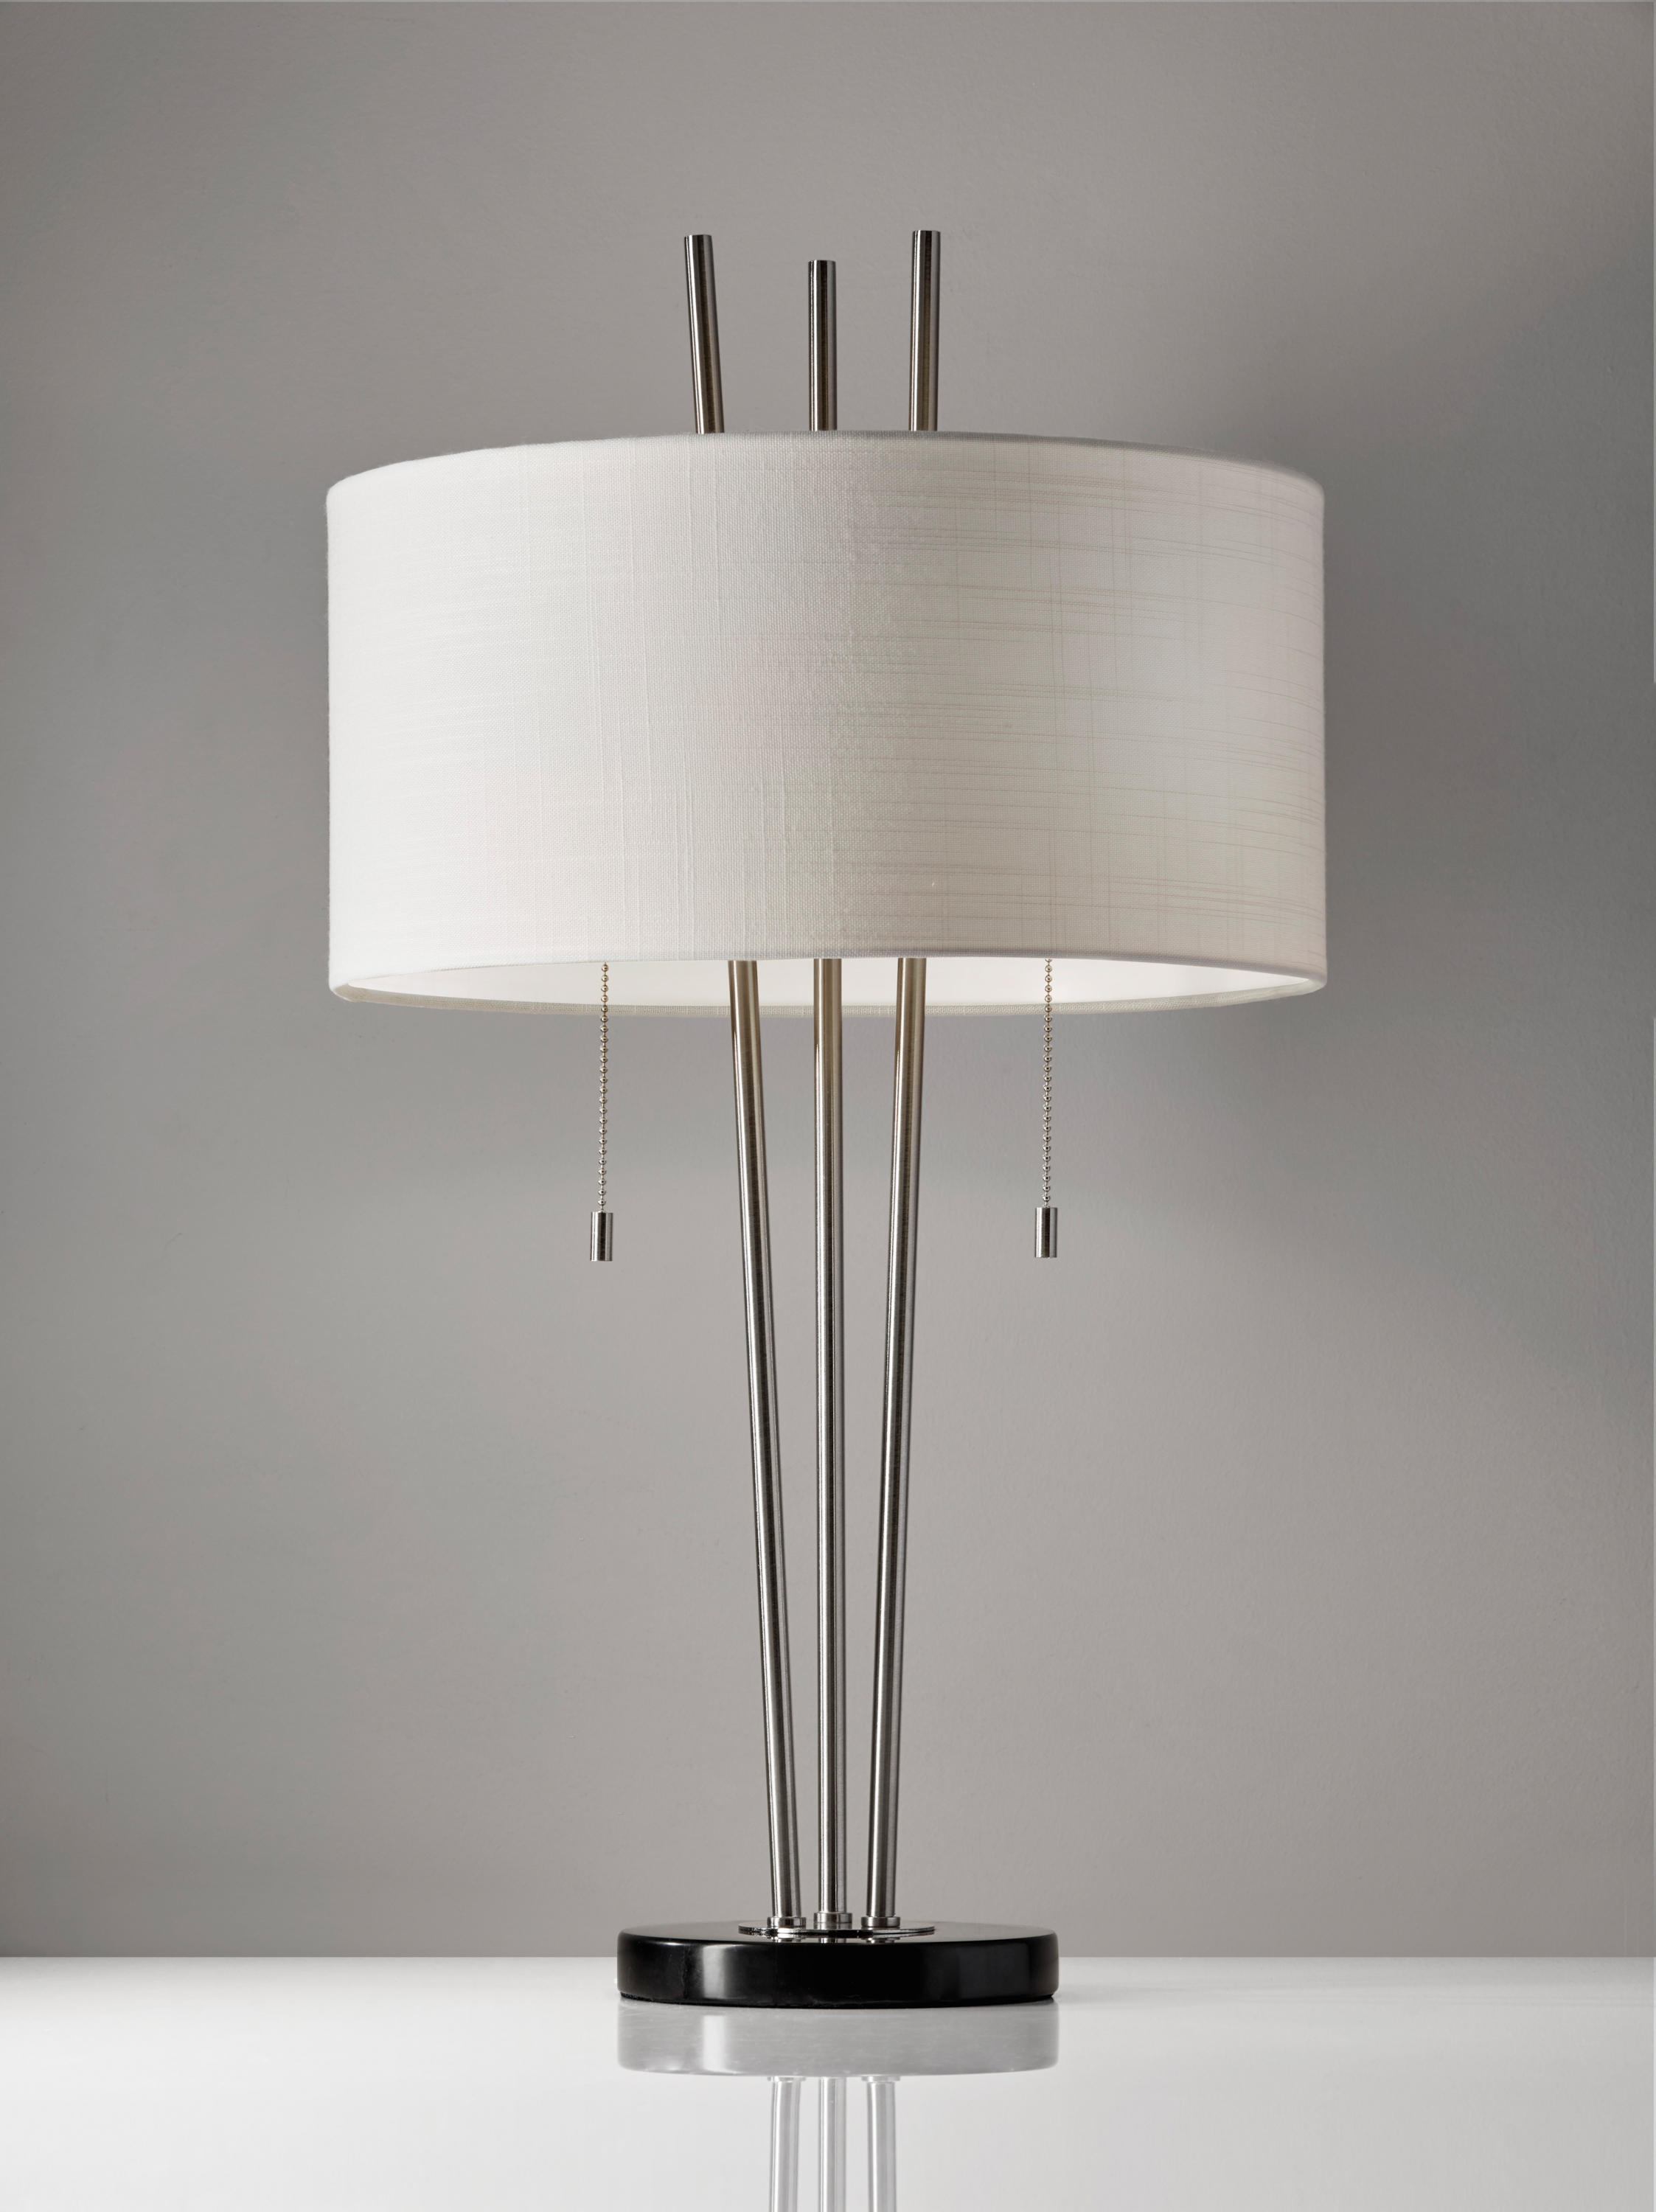 Anderson Floor Lamp By ADS360 · Anderson Floor Lamp By ADS360 ...